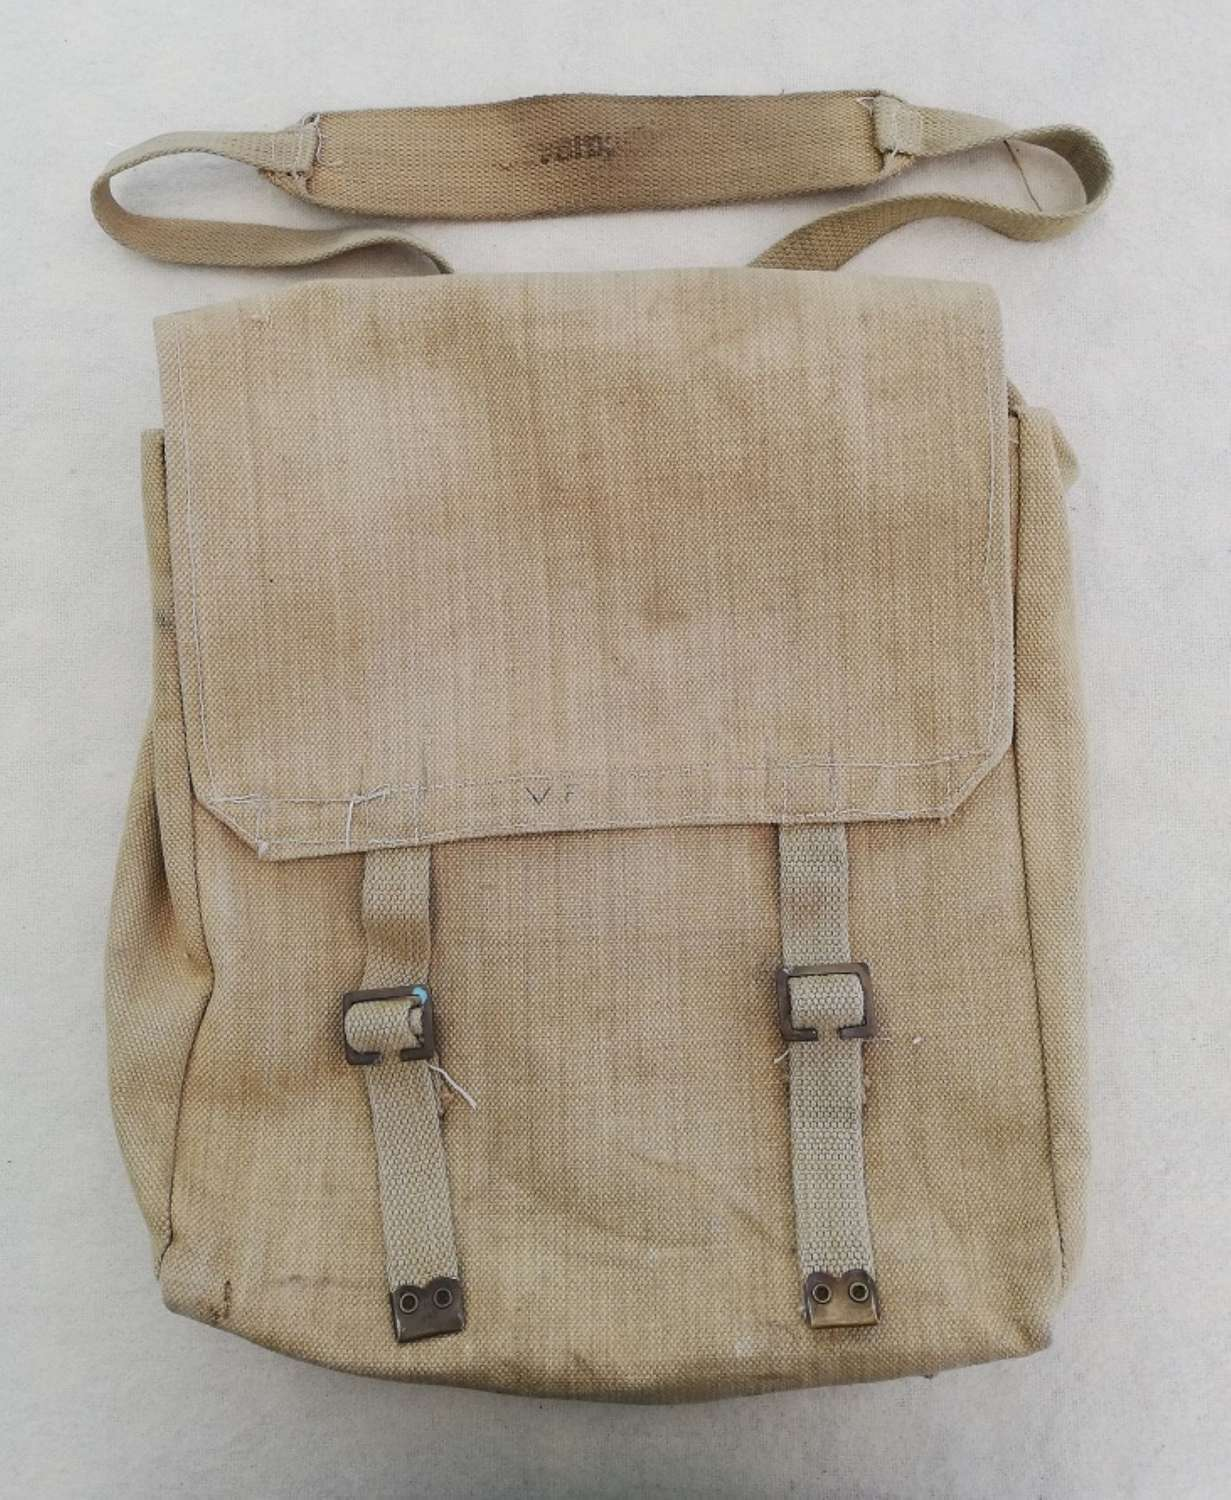 1942 Indian Large Pack & Strap